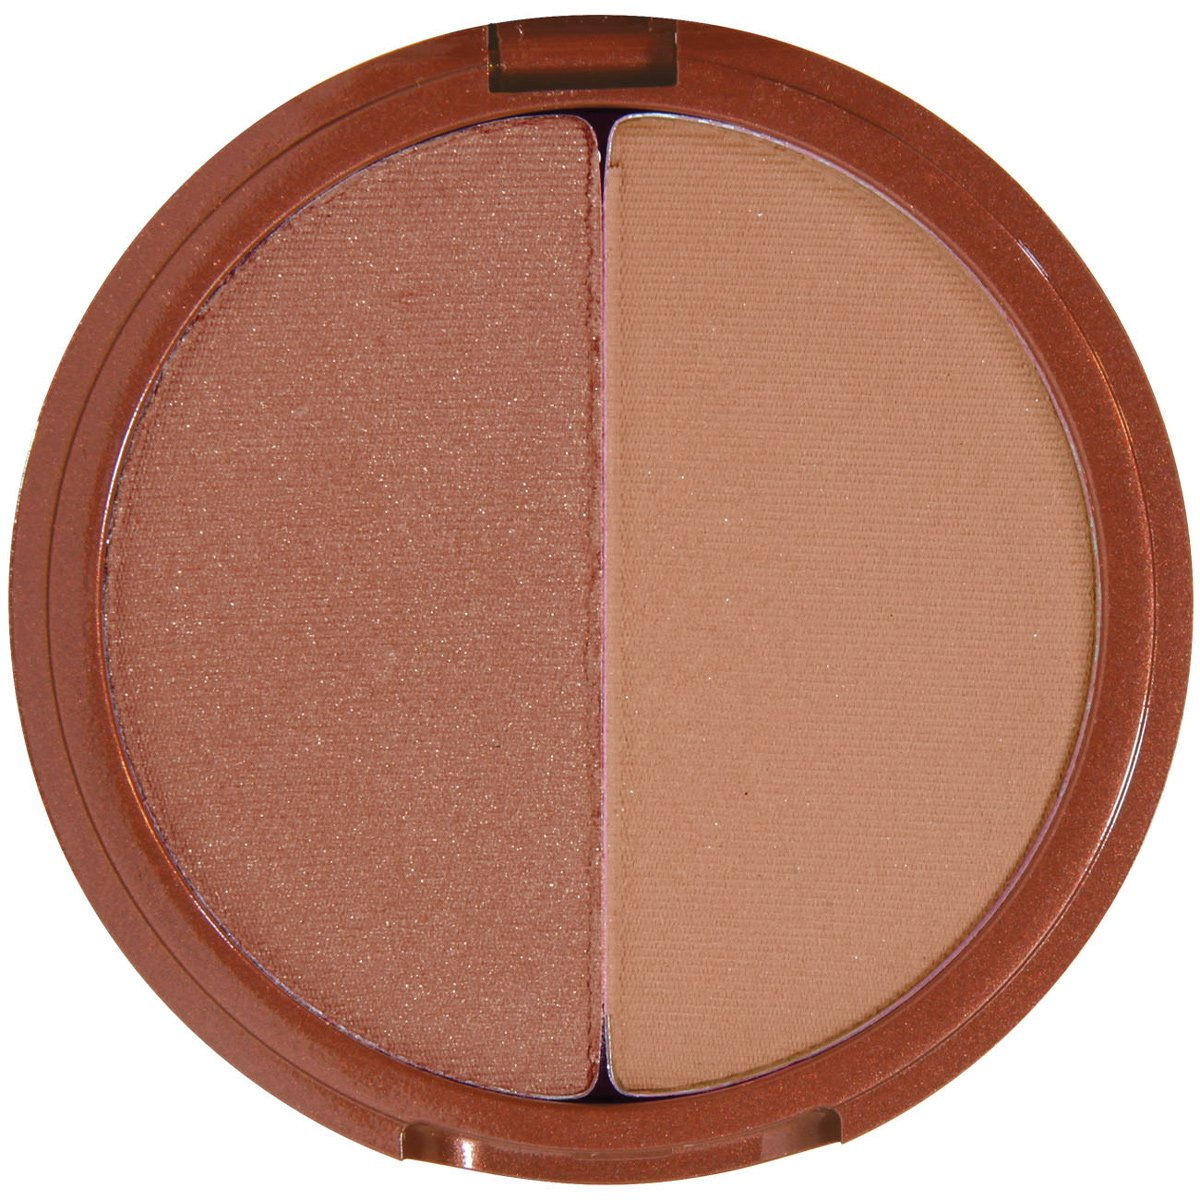 Mineral Fusion Bronzer Duo - Luster By Mineral Fusion for Women - 0.29 Oz Bronzer, 0.29 Oz by Mineral Fusion